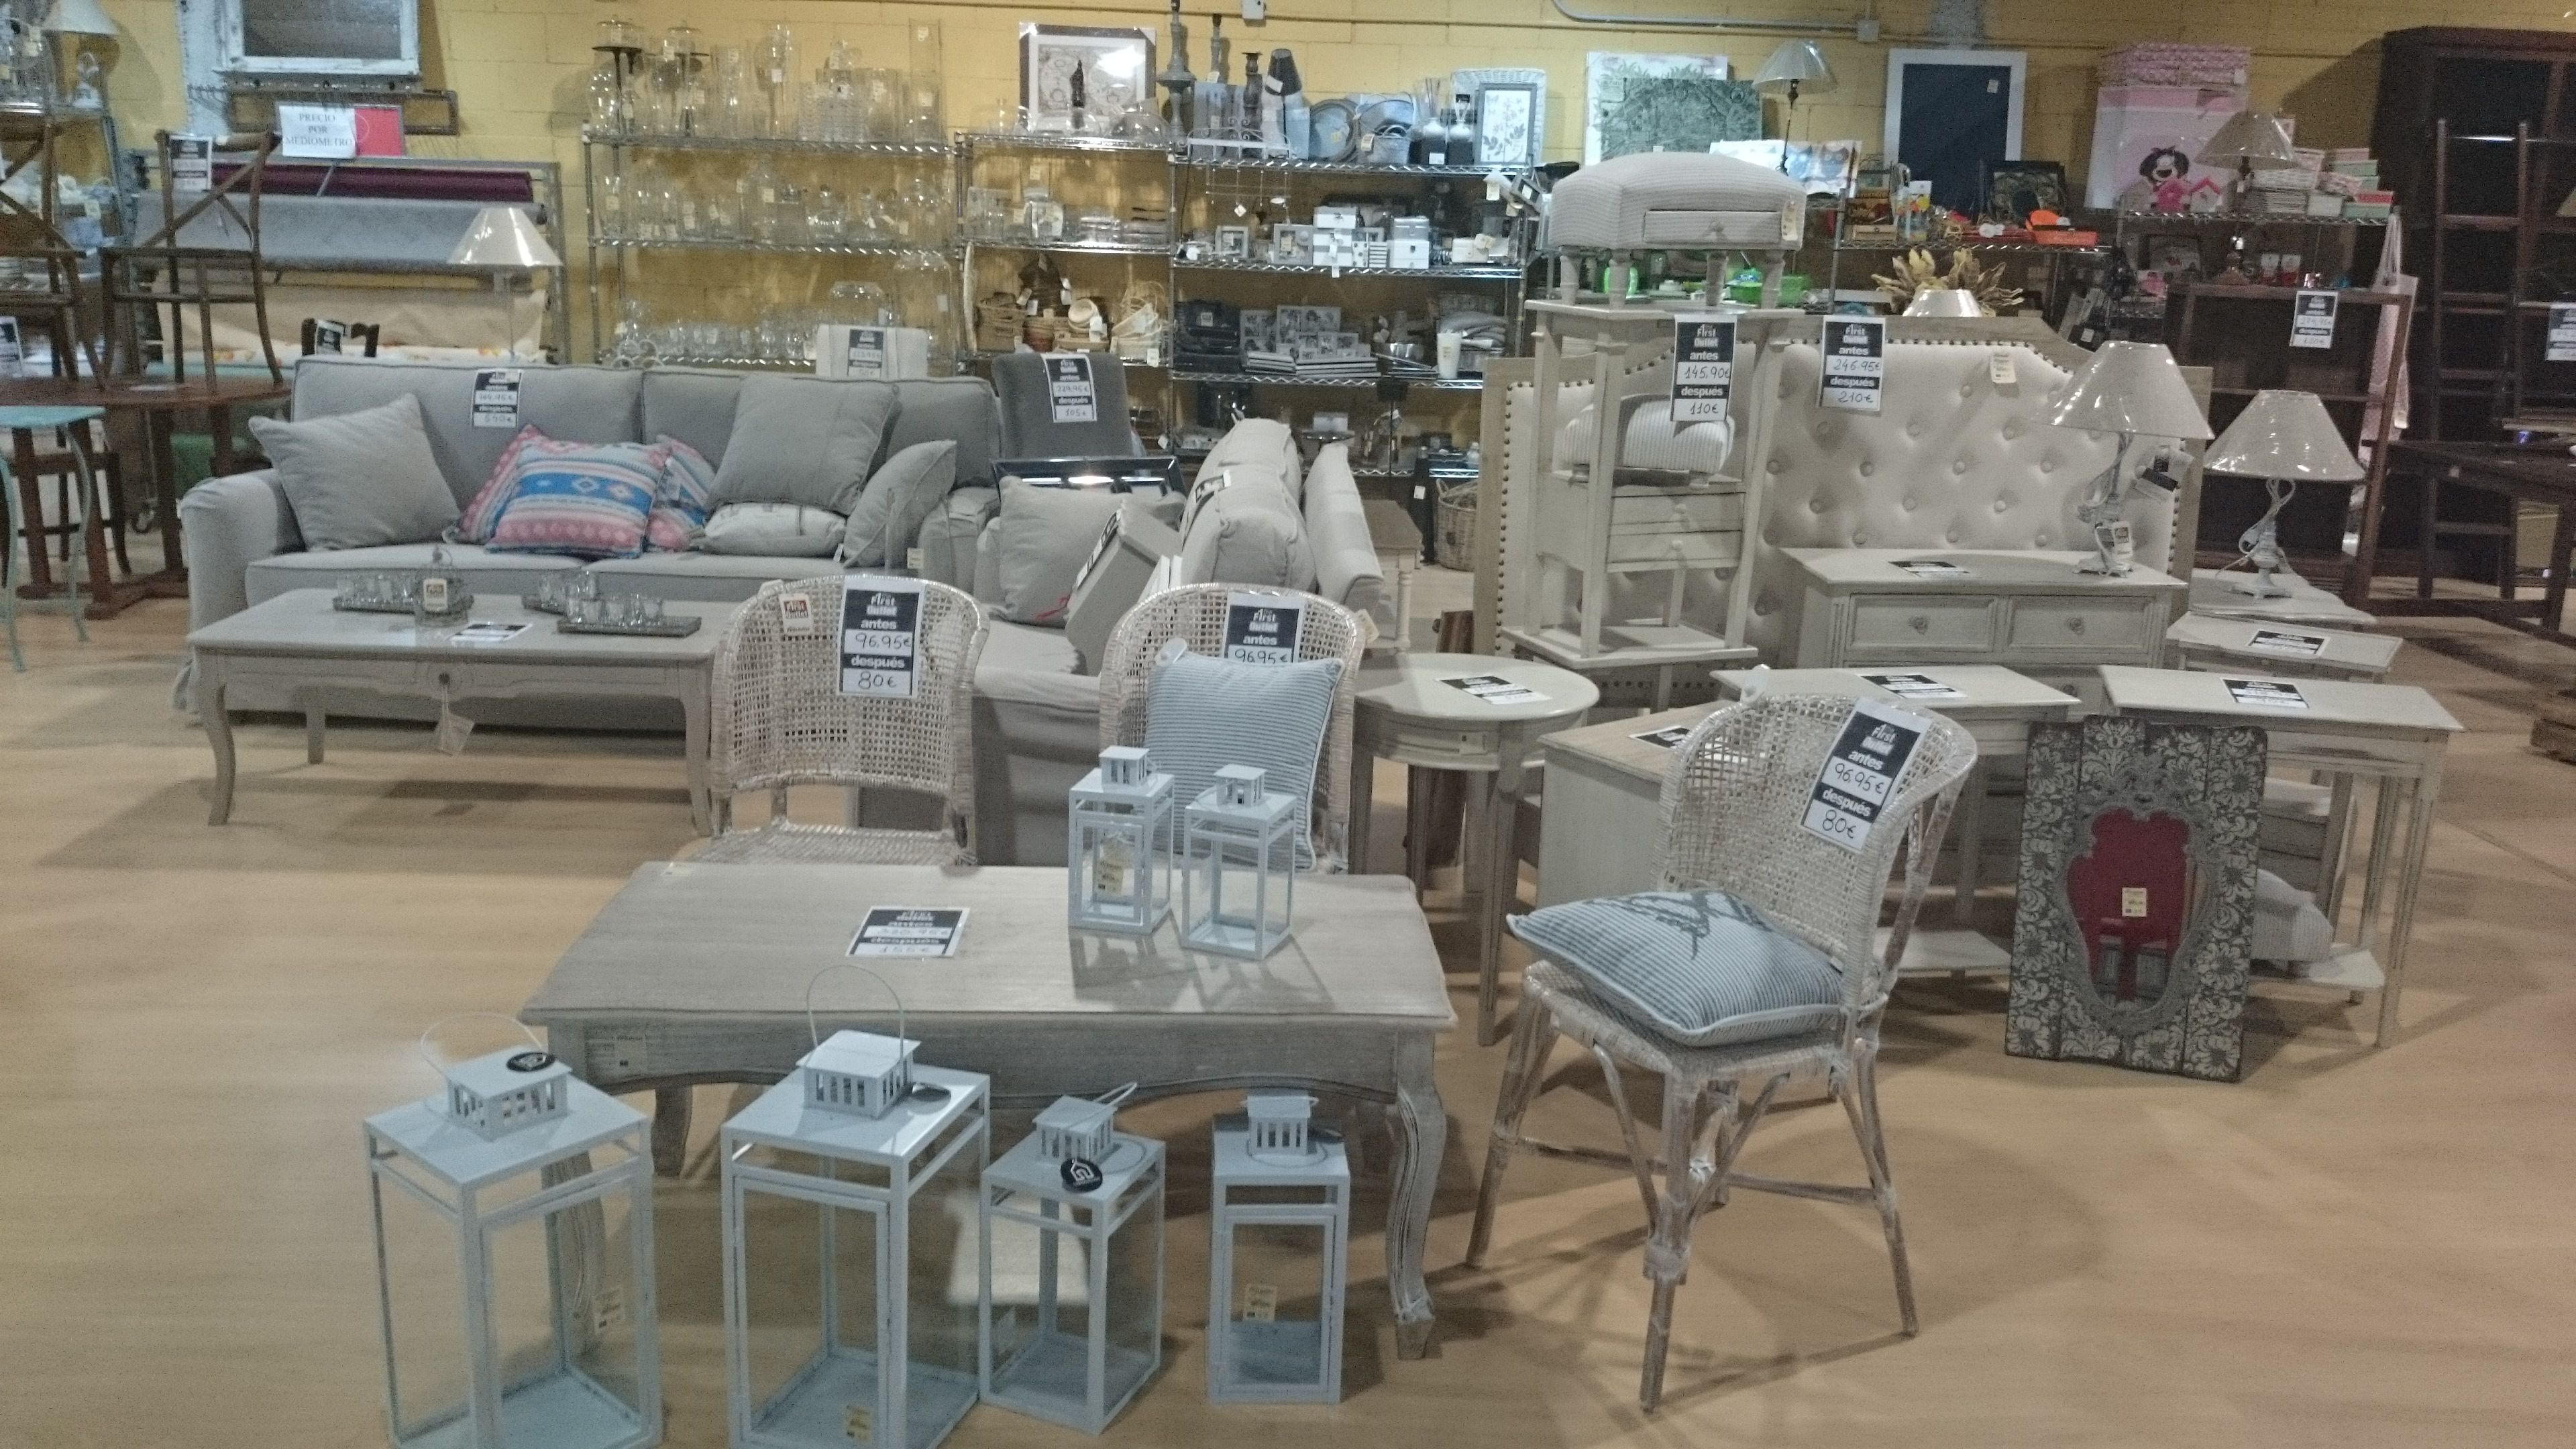 Tiendas De Muebles En Jerez Feria Del Mueble The First Outlet The First